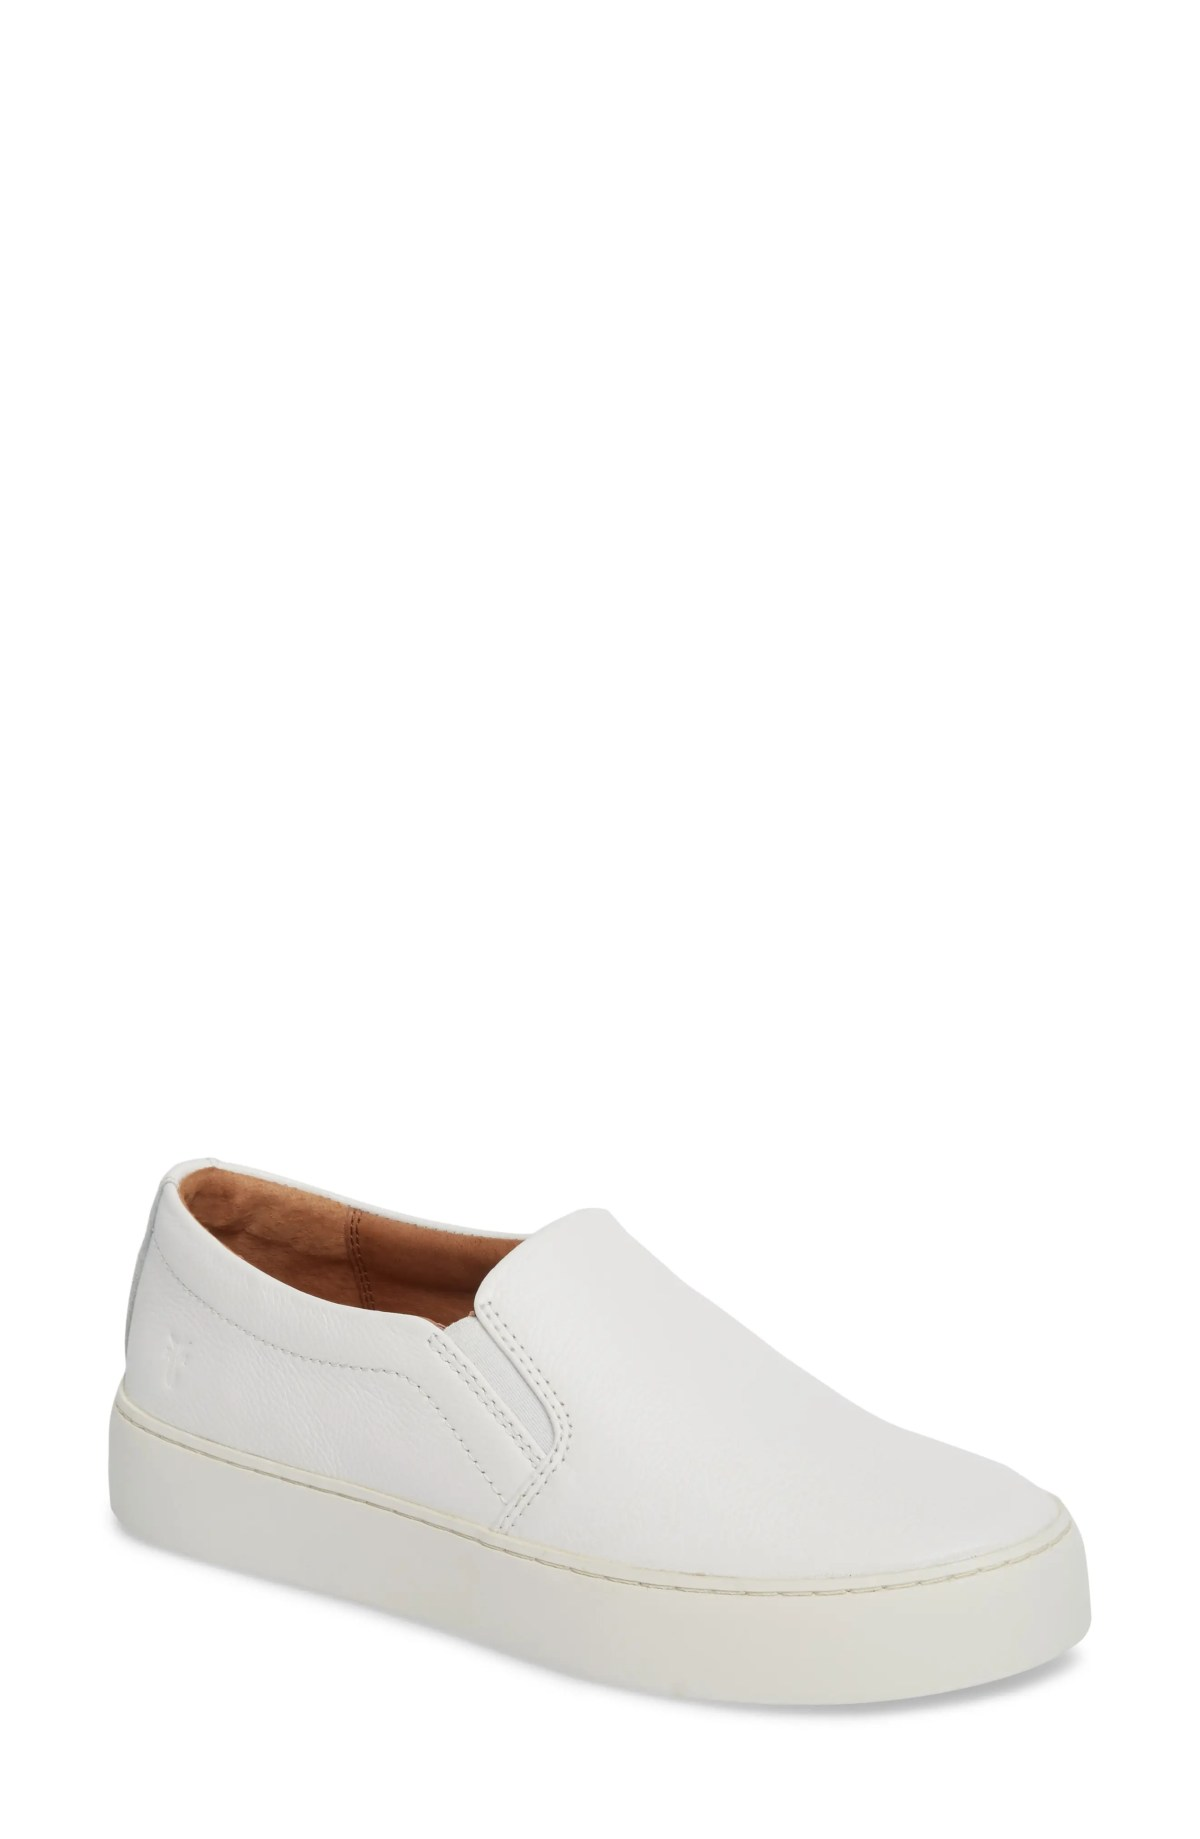 FRYE Lena Slip-On Sneaker, Main, color, WHITE LEATHER